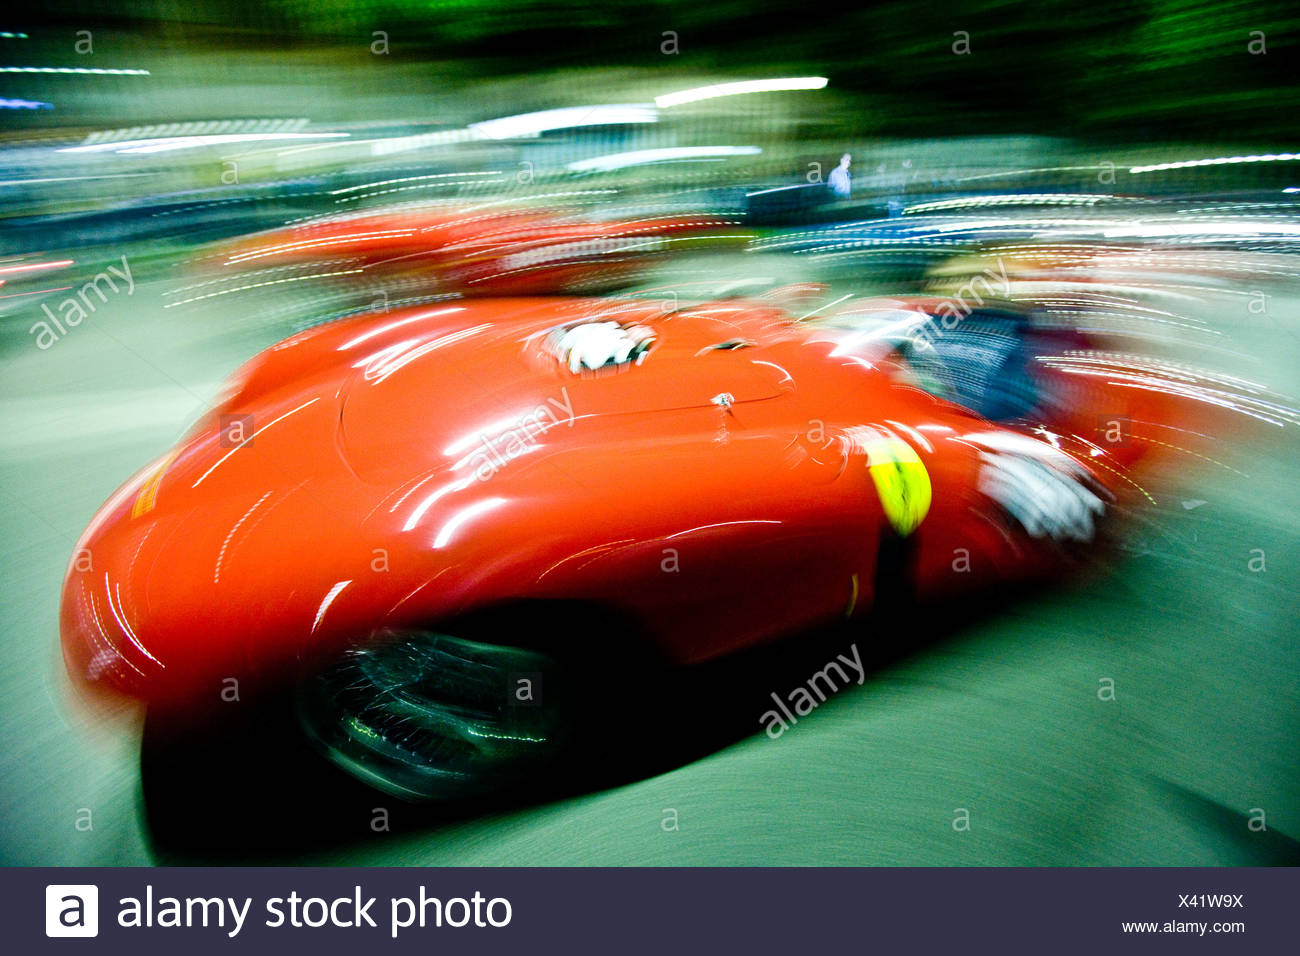 Blurry racing cars, Mille Miglia car race, Italy, 2008 - Stock Image